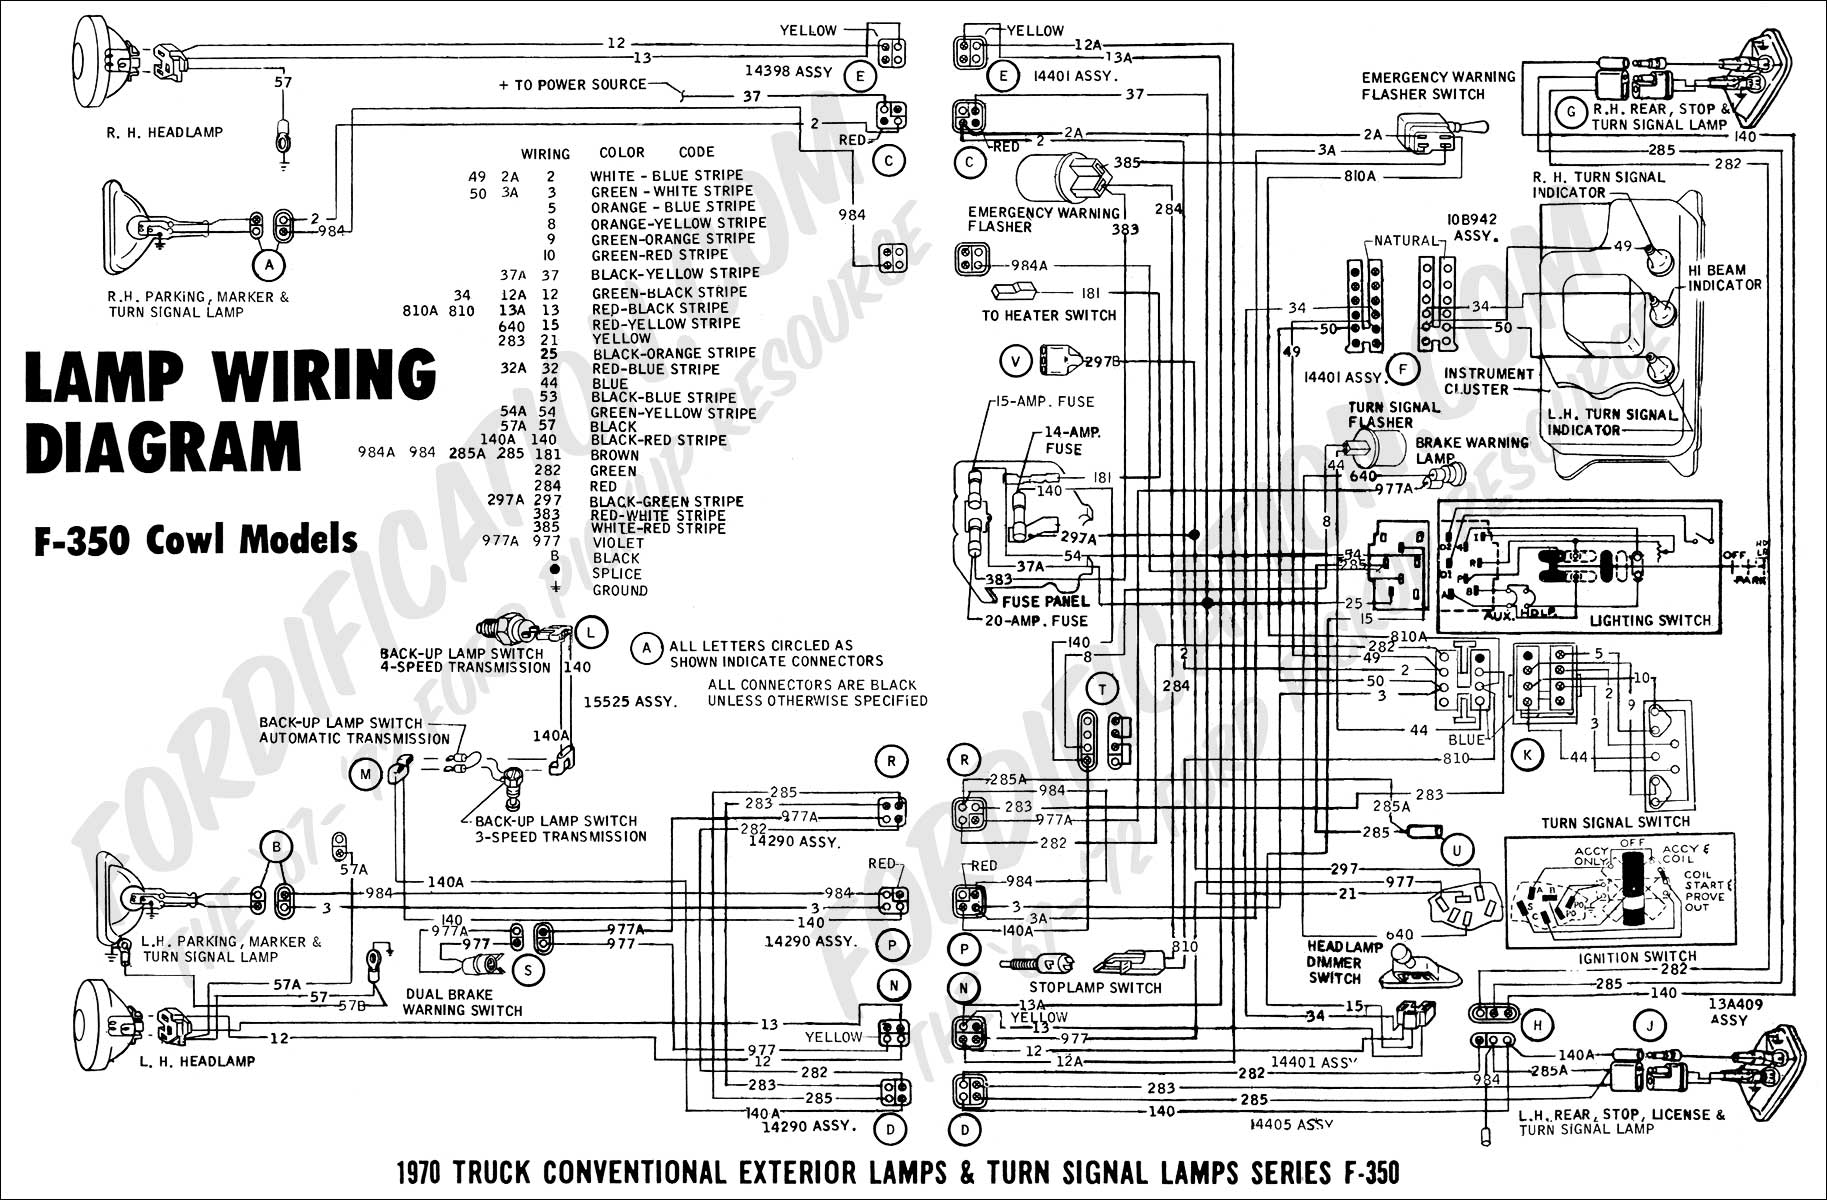 1991 Ford F 250 Wiring Diagram Manual Guide. 1991 F250 Fuse Box Wiring Library Rh 98 Kaufmed De 1992 Ford F 250 Diagram. Ford. 1985 Ford F 150 Fuse Box Diagrams At Scoala.co